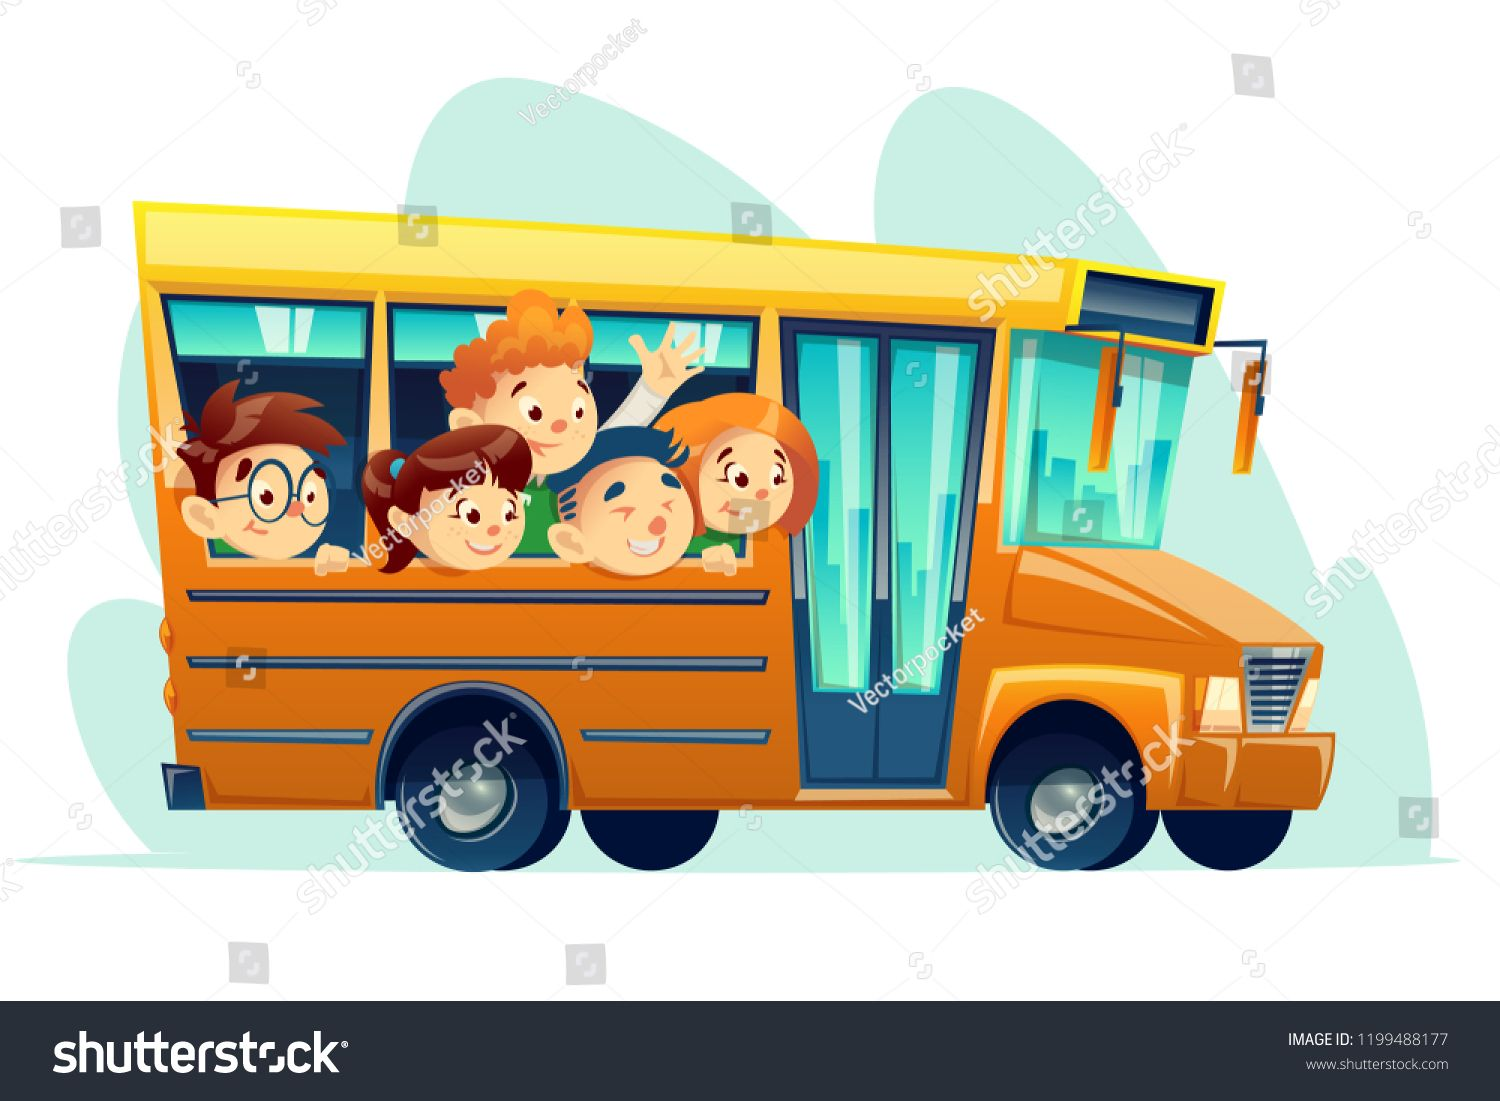 Cartoon School Bus Full Of Smiling Kids Yellow Retro Vehicle With